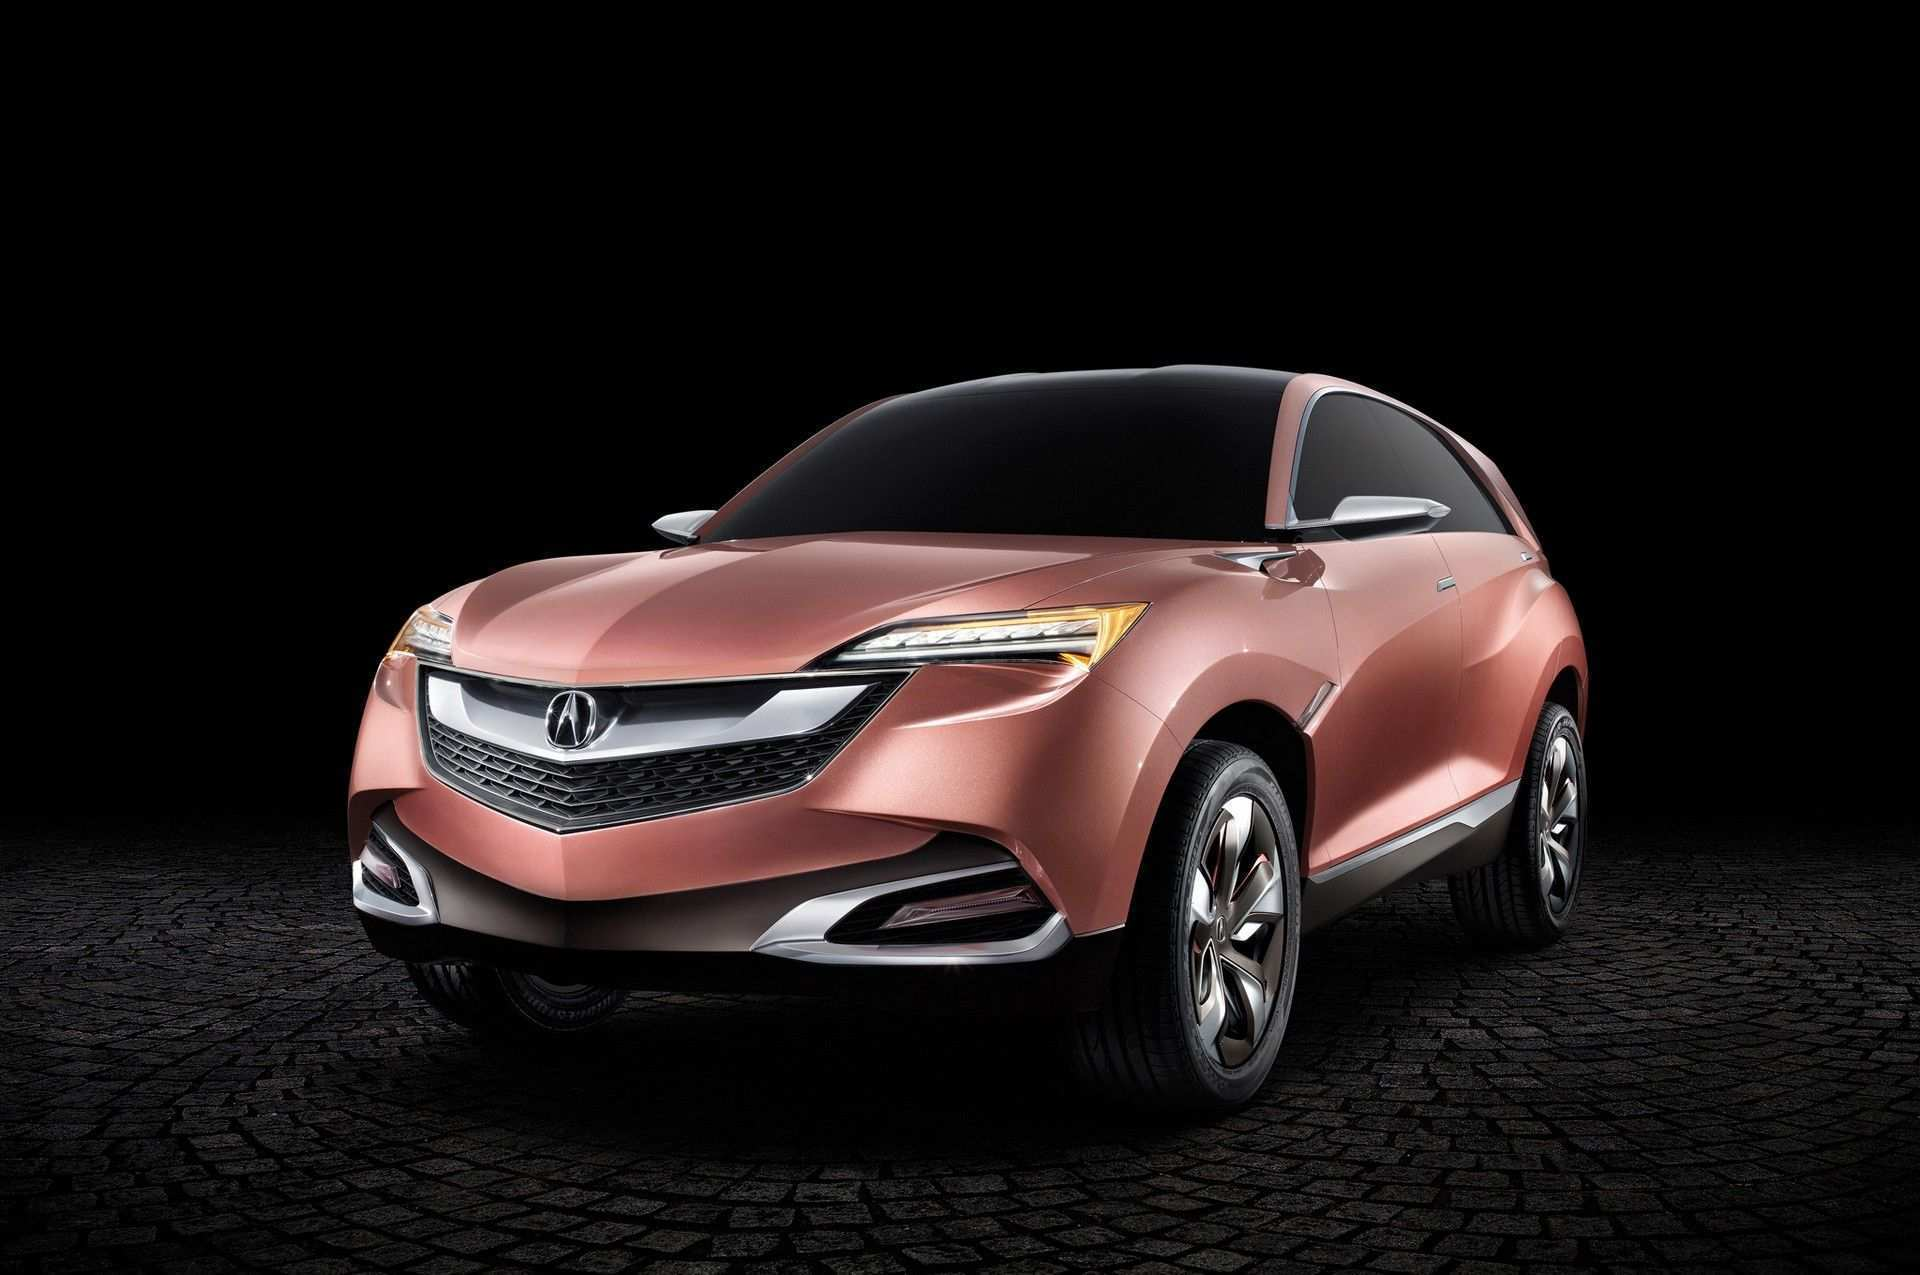 20 Great 2020 Acura Cdx Price and Review for 2020 Acura Cdx